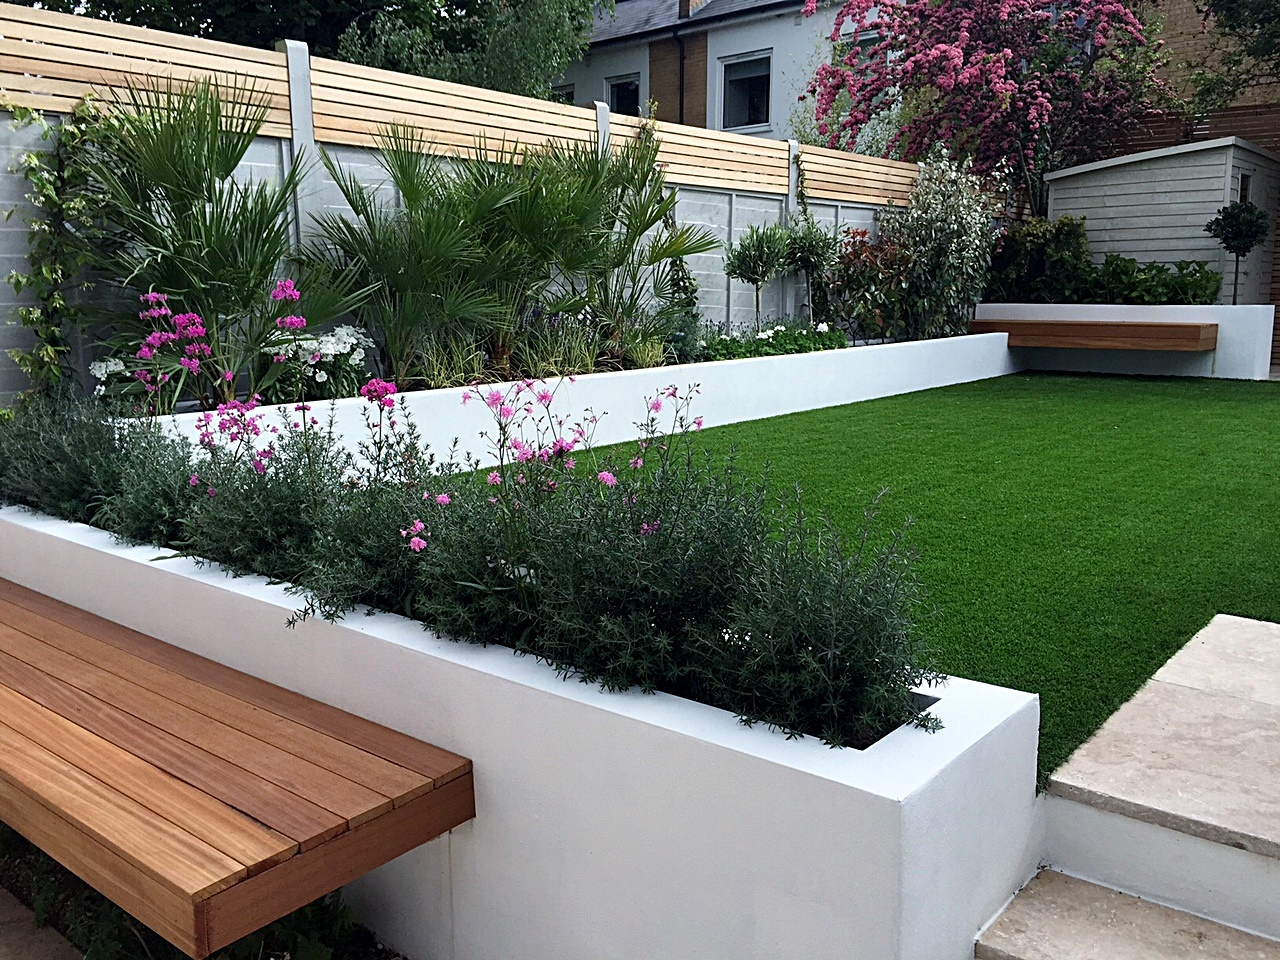 Modern garden design fulham chelsea clapham grass for Paving garden designs